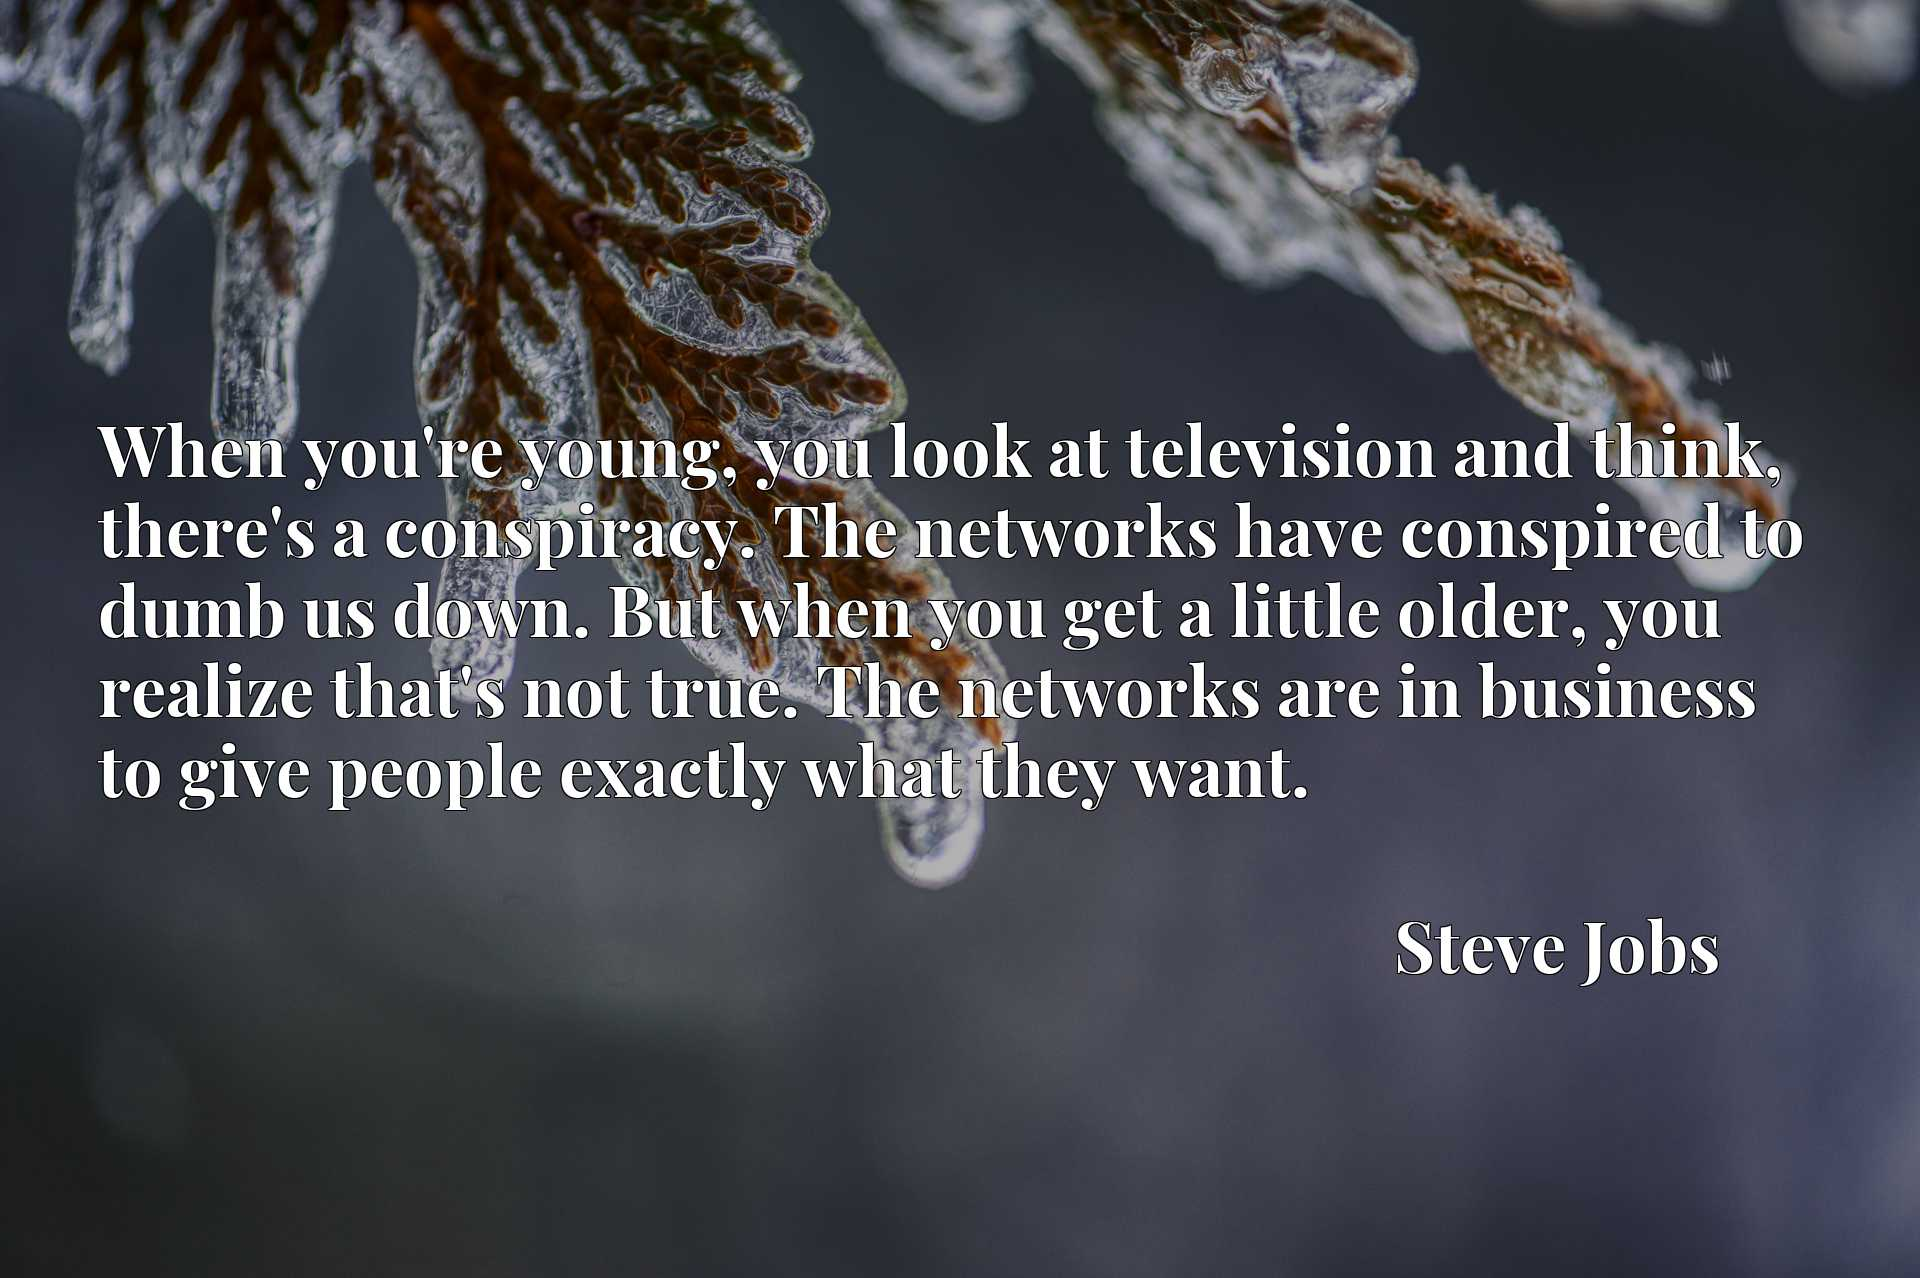 When you're young, you look at television and think, there's a conspiracy. The networks have conspired to dumb us down. But when you get a little older, you realize that's not true. The networks are in business to give people exactly what they want.